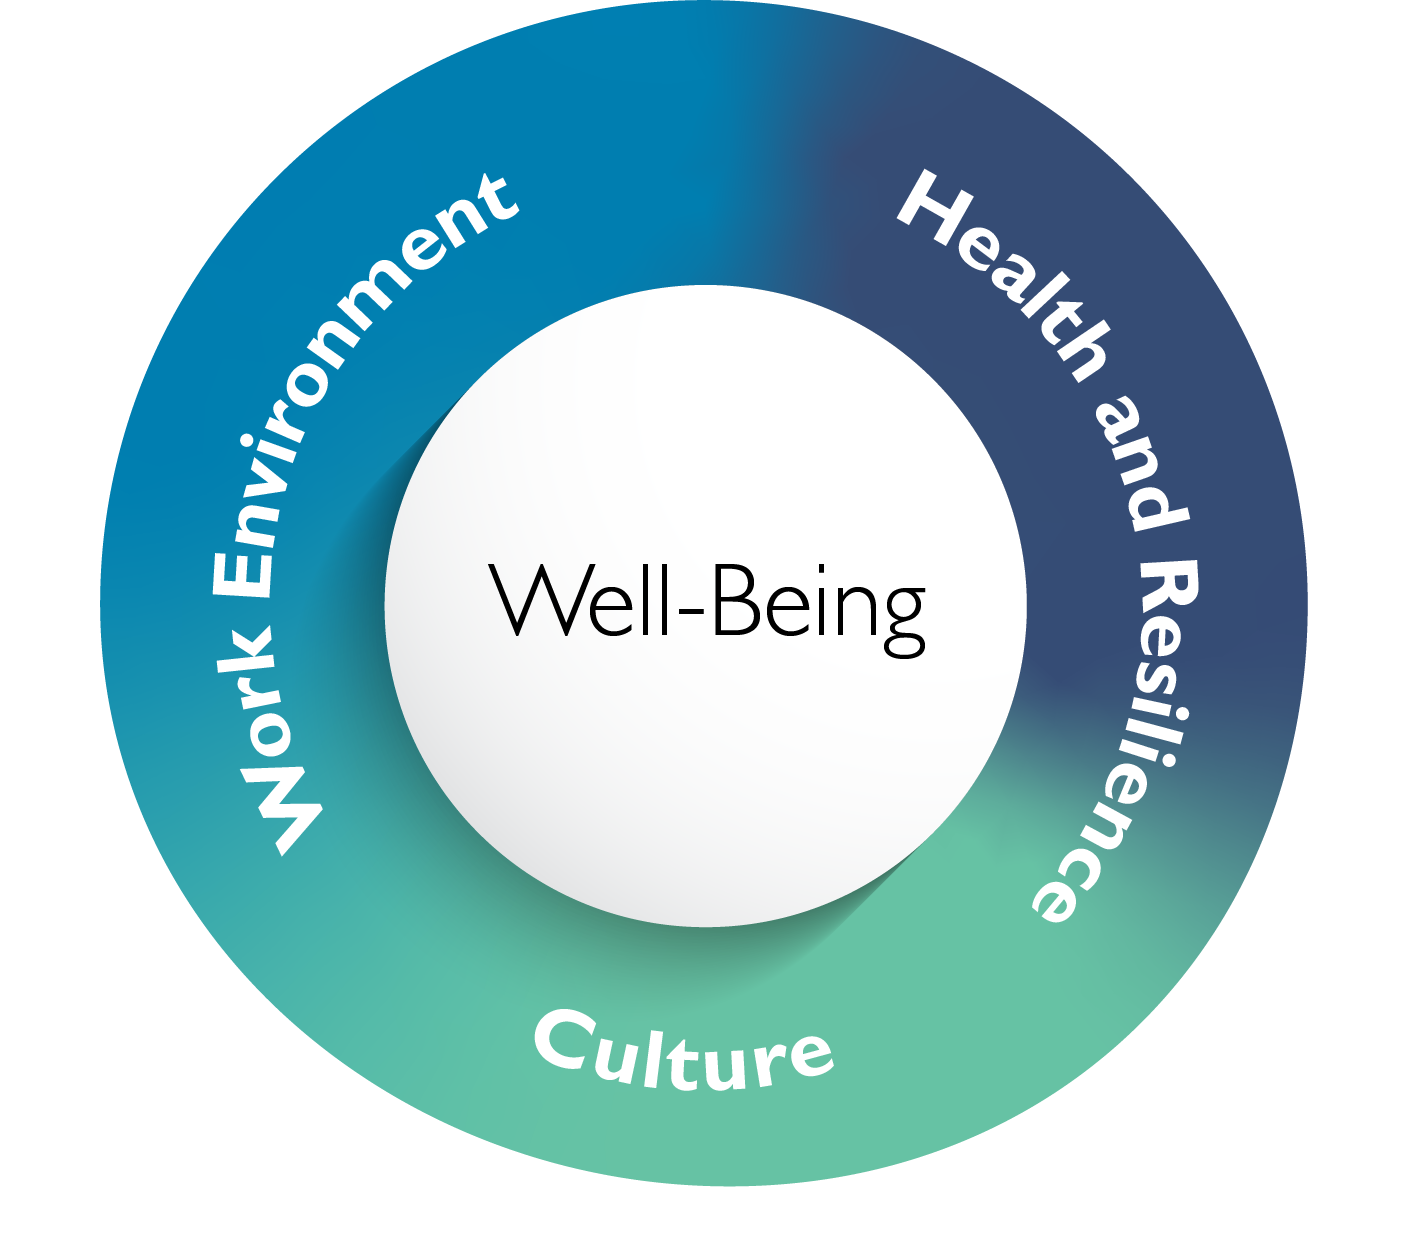 circle graphic with the terms work environment, culture and health and resilience. The word well-being is in the center of the circle.